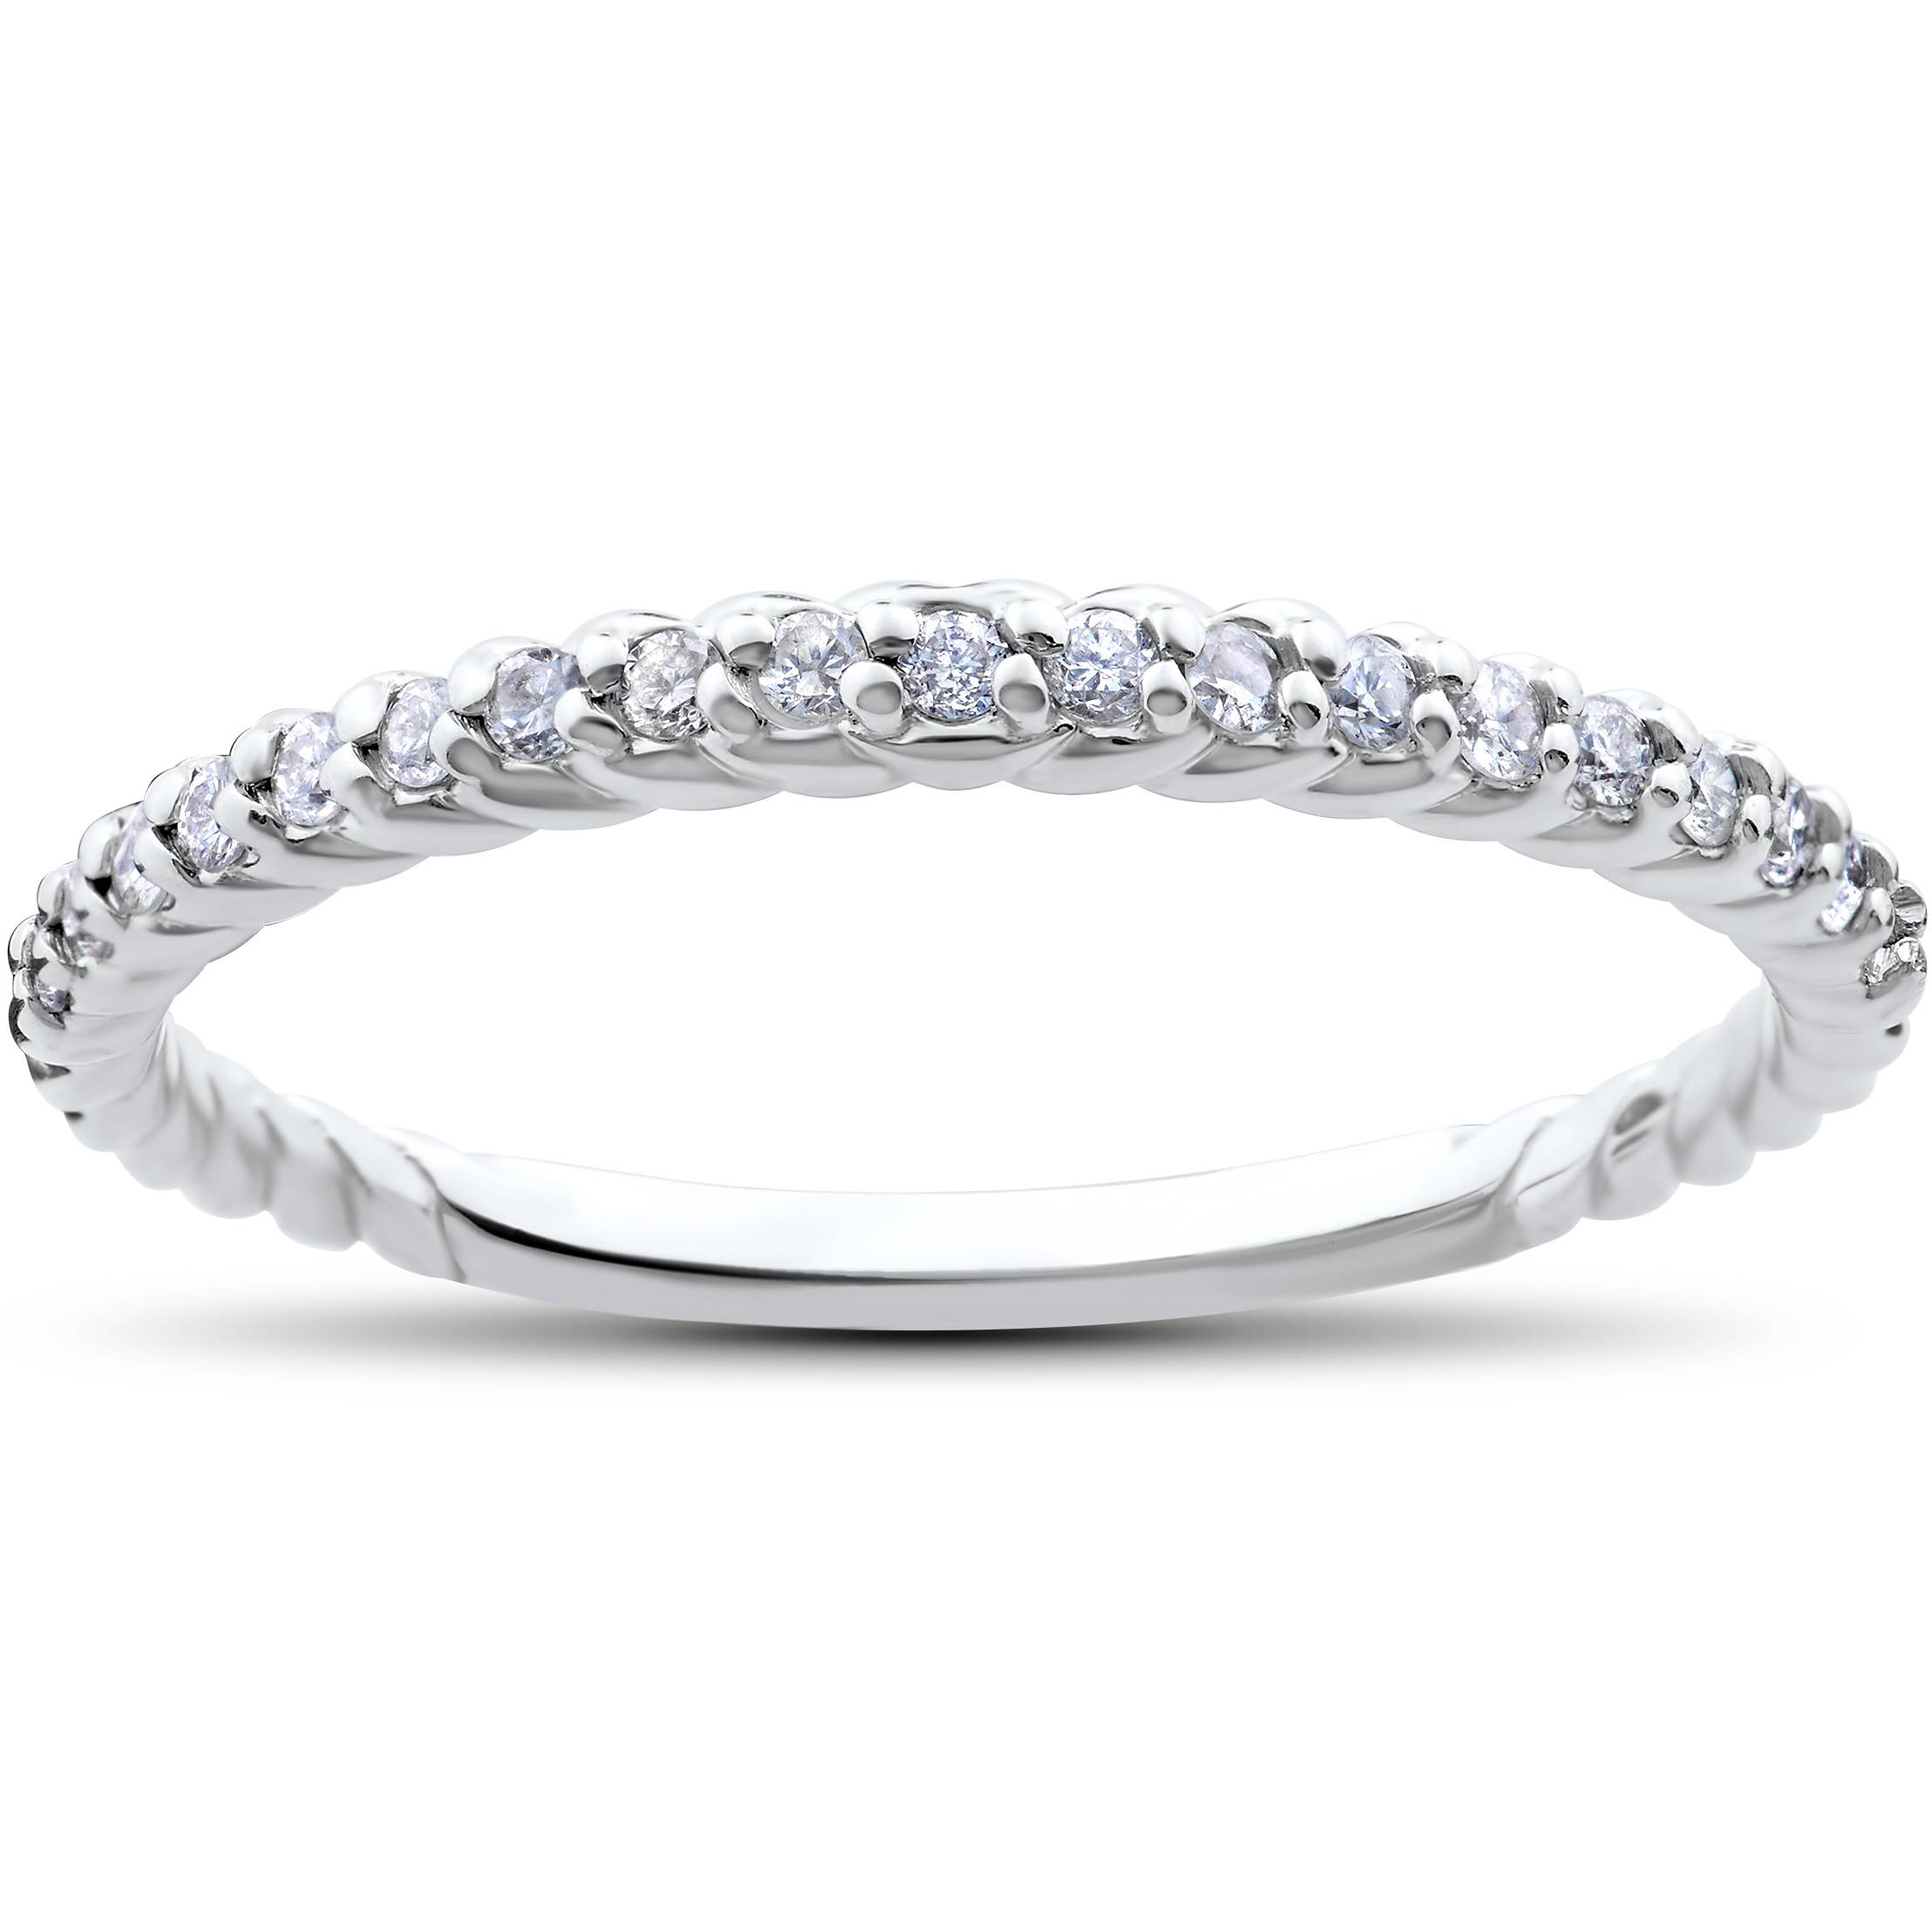 Stackable Diamond Wedding Ring 1/4ct Braided Anniversary Band 14k White Gold Intended For Most Popular Diamond Braid Anniversary Bands In White Gold (View 3 of 25)